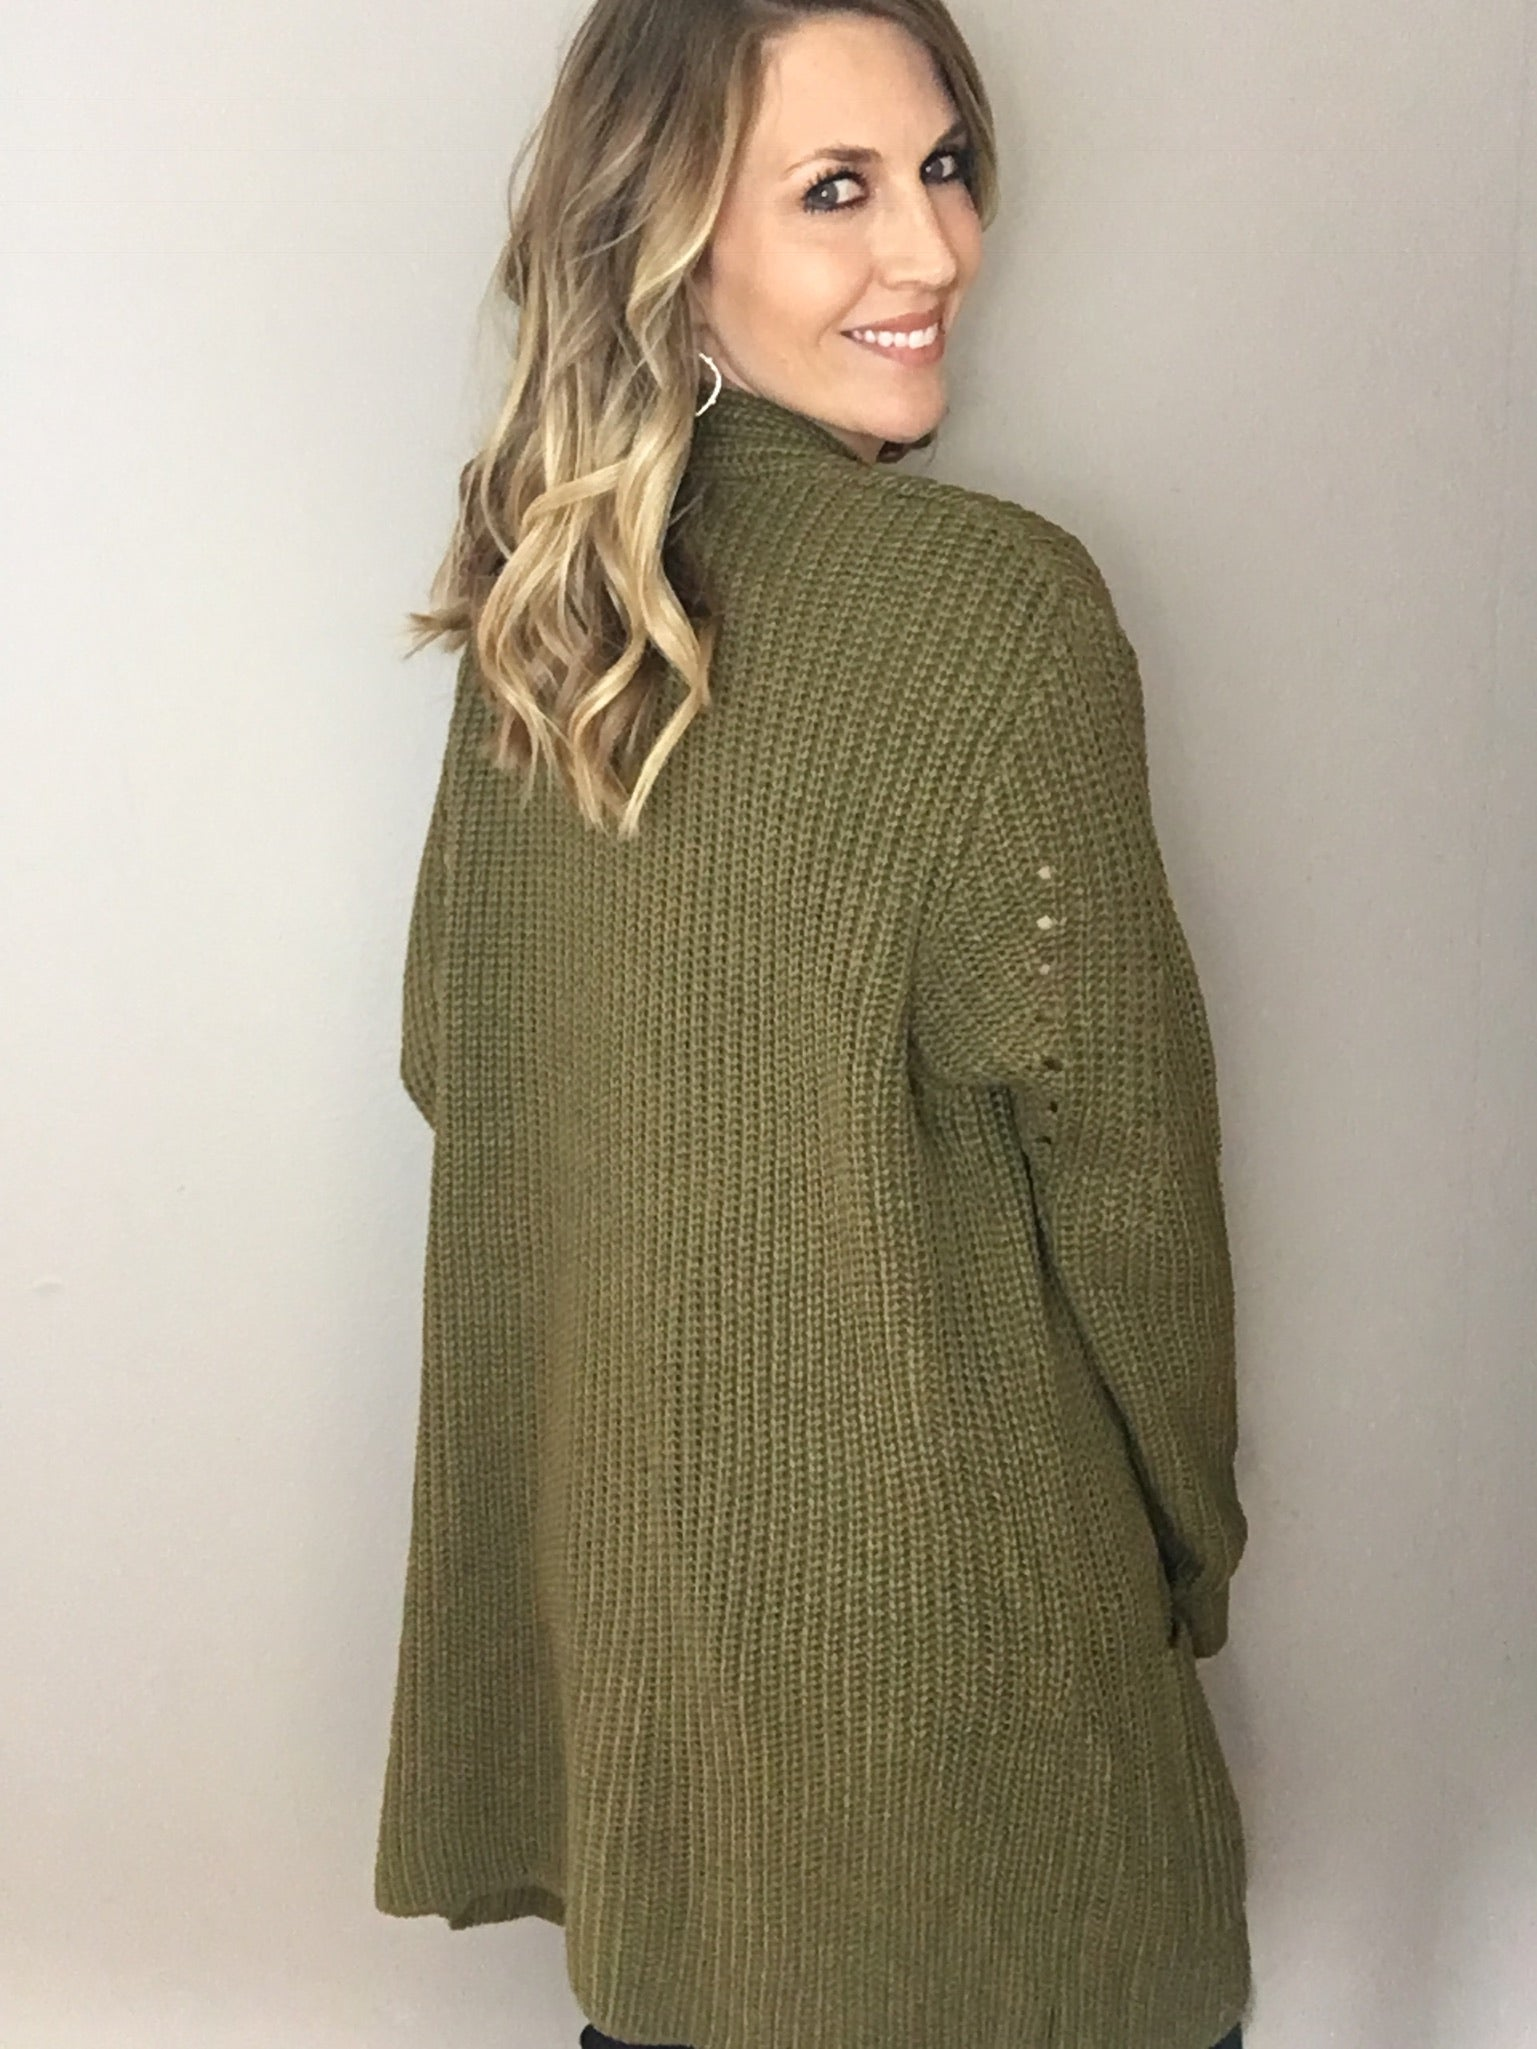 Great Escape Olive Cardigan